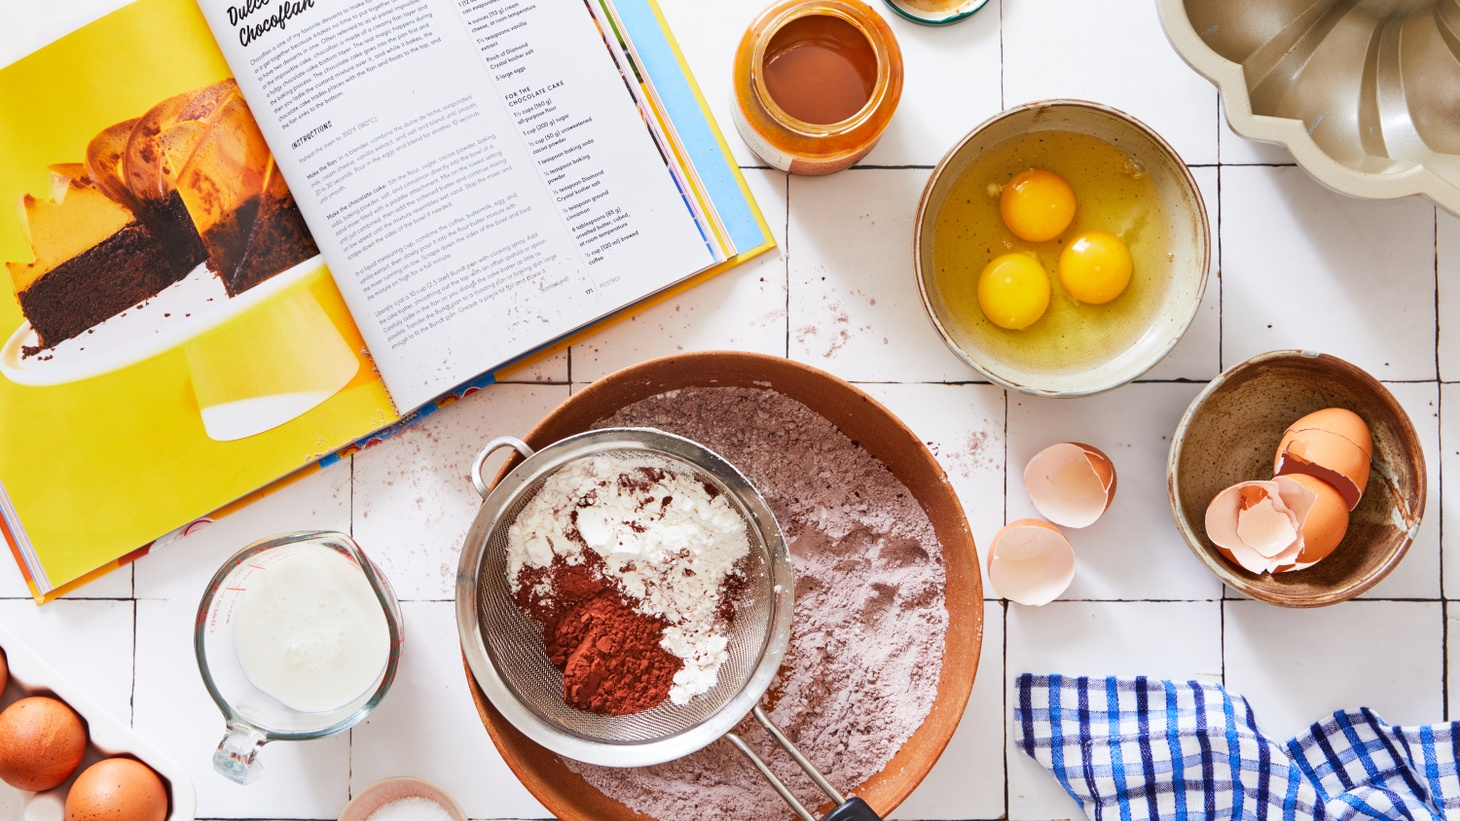 Genevieve Ko of the New York Times Food section suggests reading a recipe carefully and sticking to it, anticipating the steps and they may differ from what one may expect.